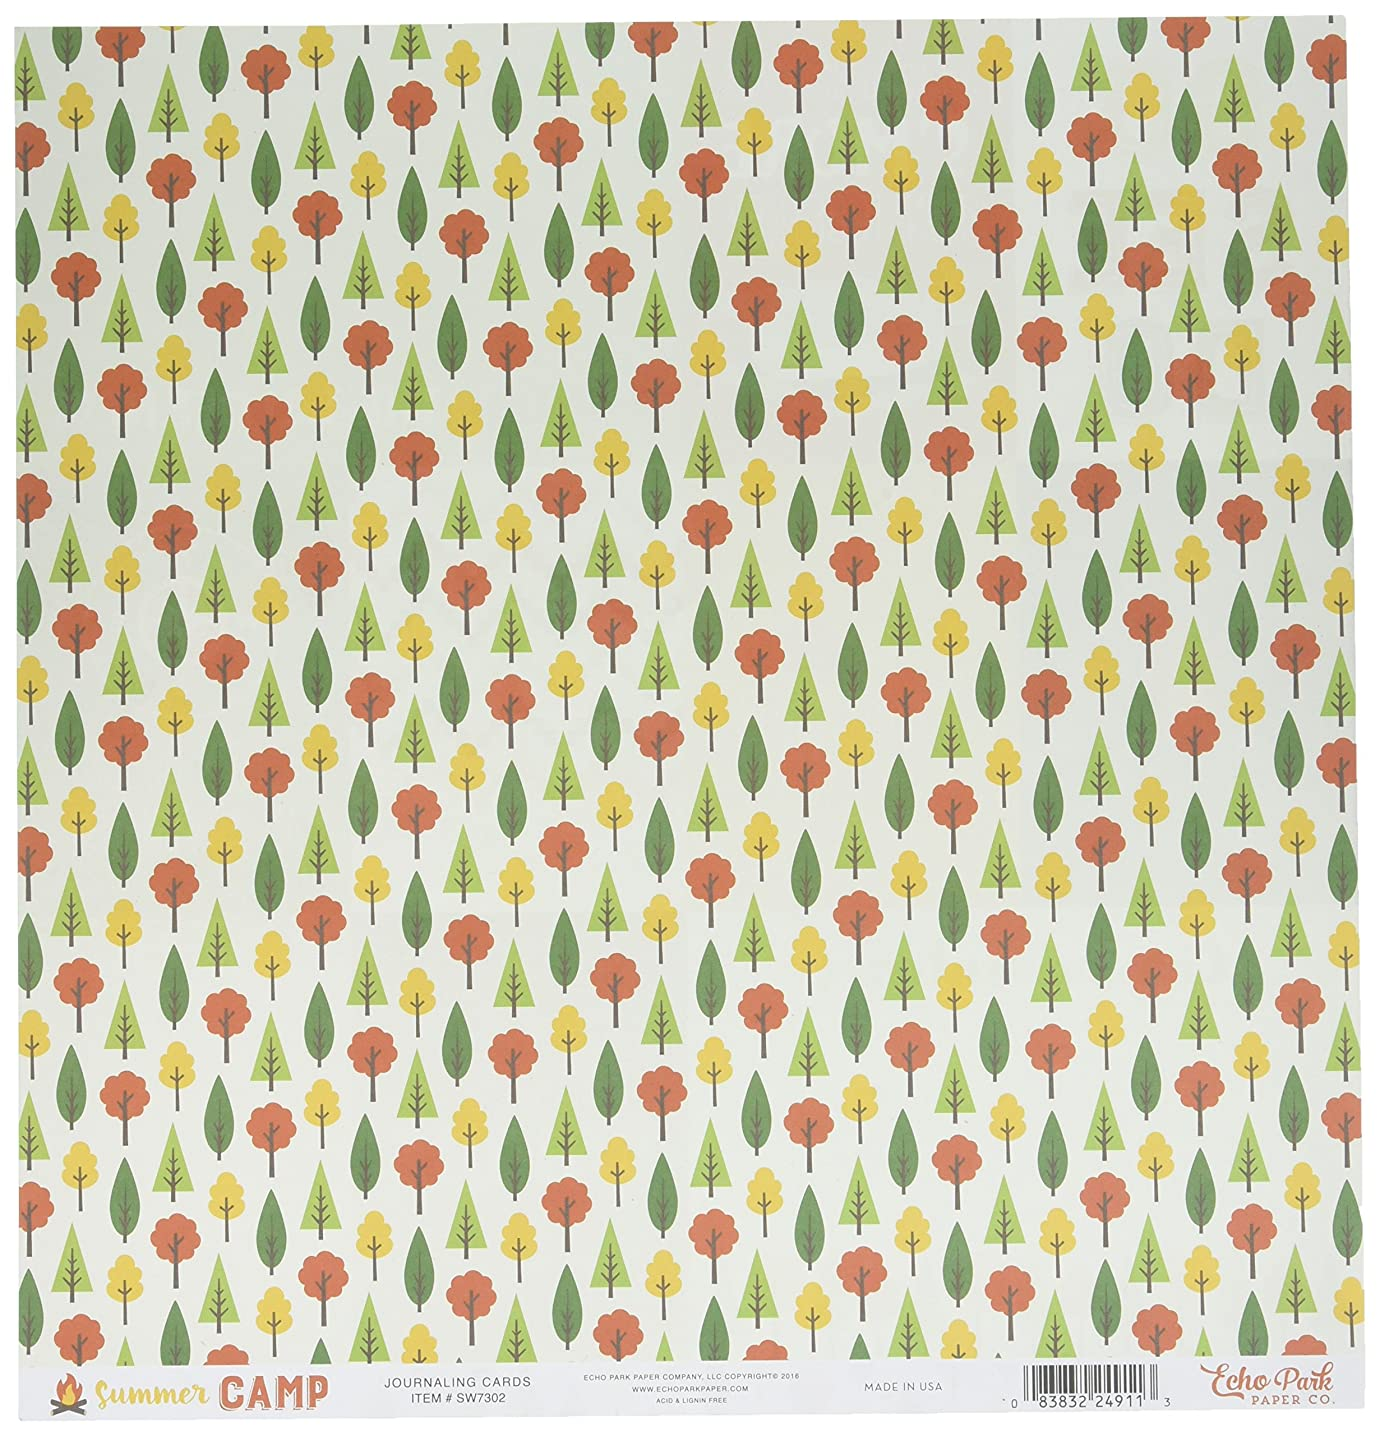 Echo Park Paper Summer Camp Double-Sided Cardstock 12